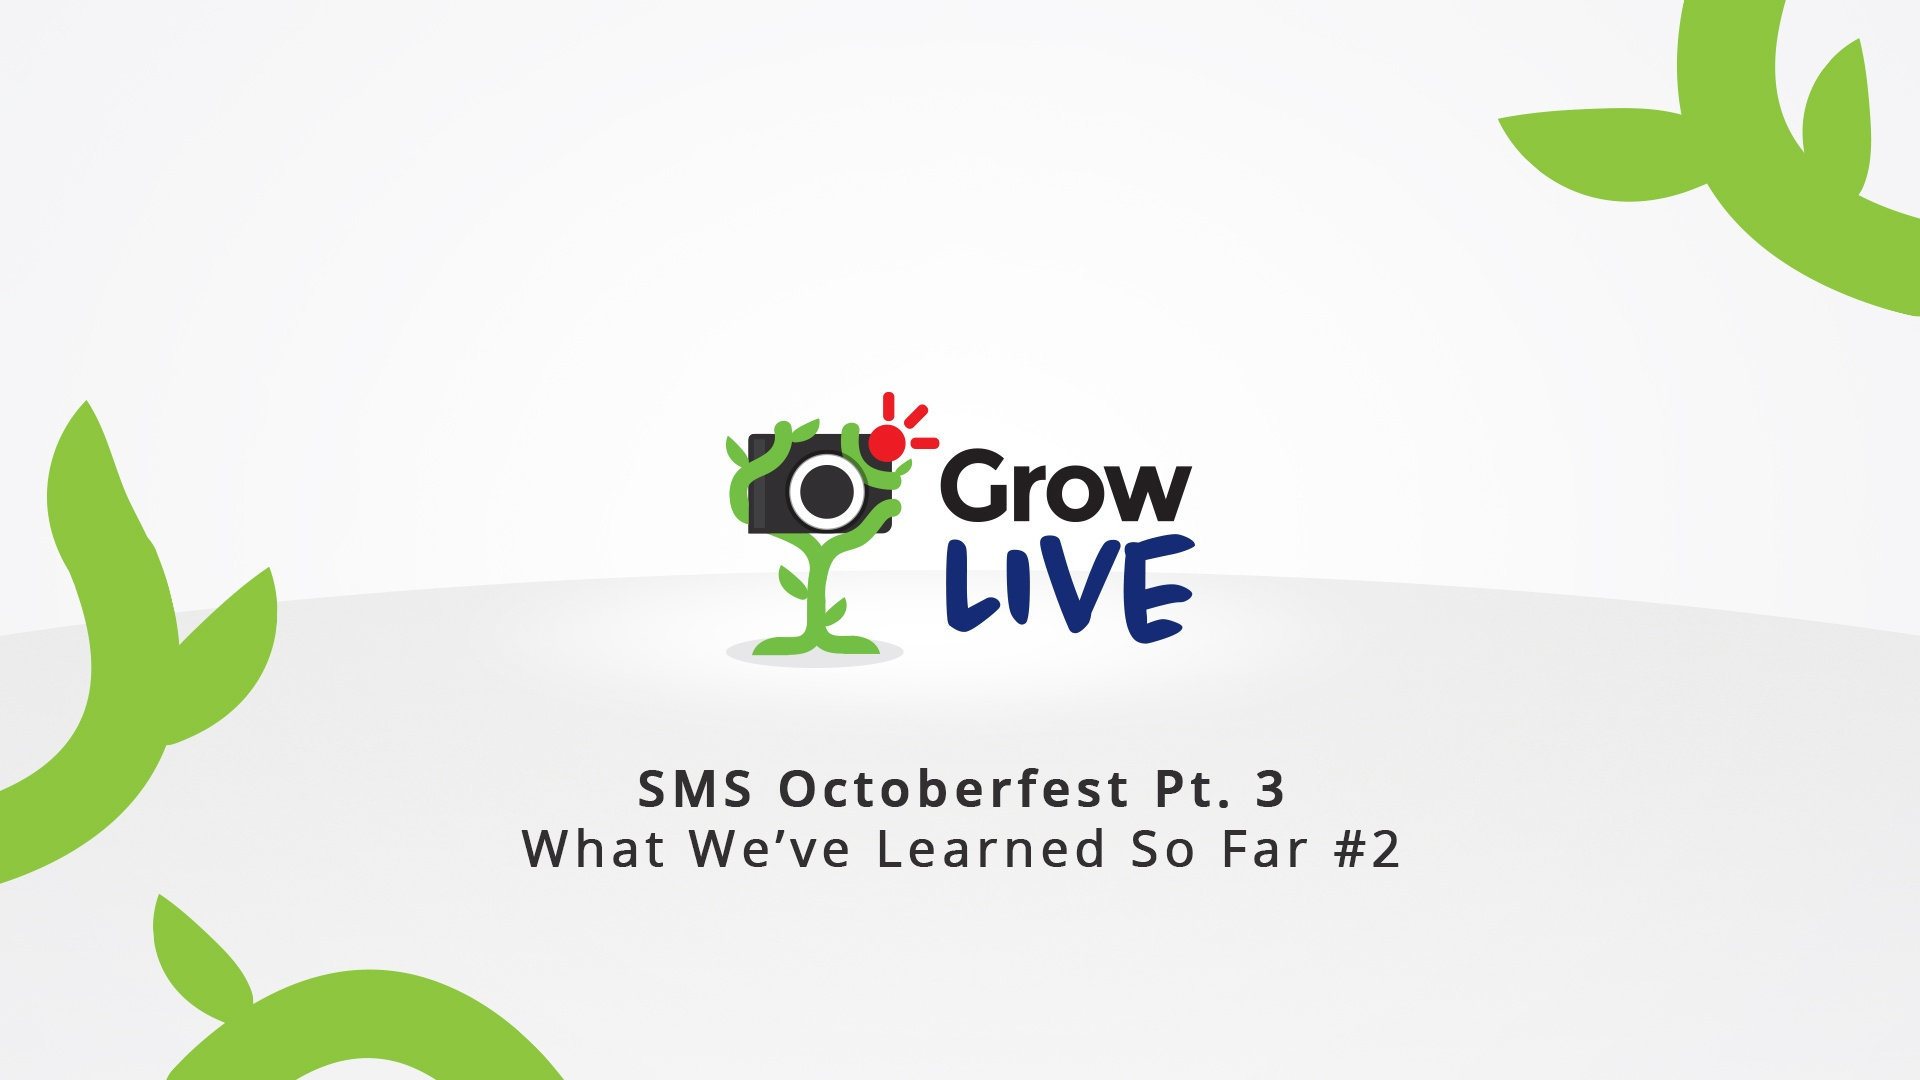 12 - Grow Live - SMS Octoberfest Pt. 3 - What We've Learned So Far 2.jpg